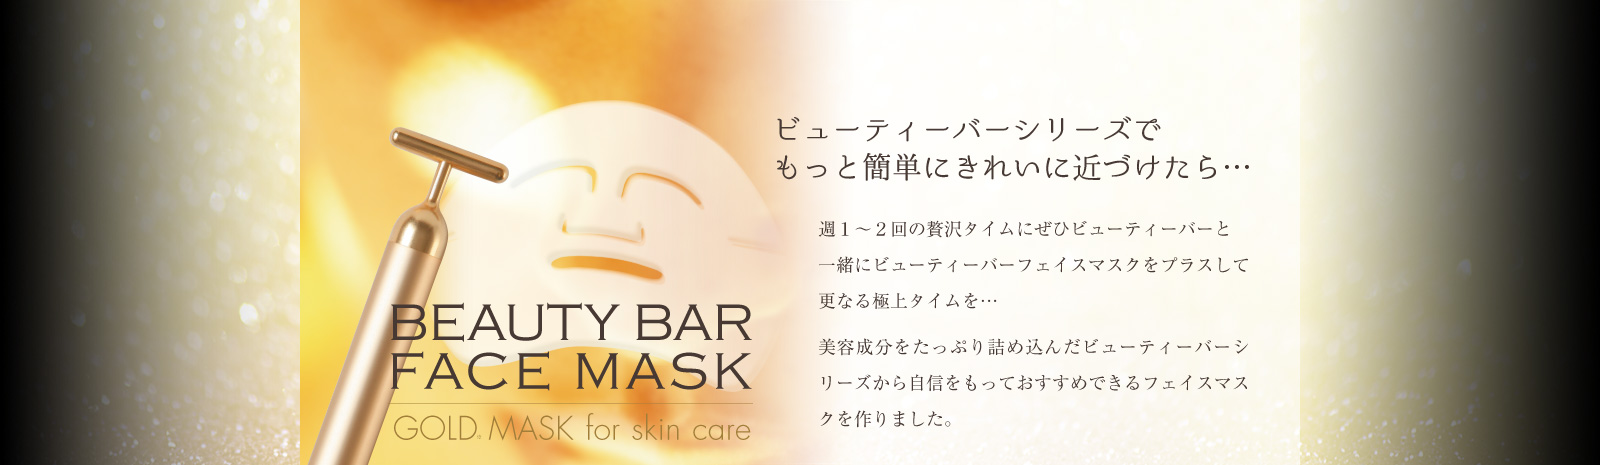 BEAUTY BAR FACE MASK